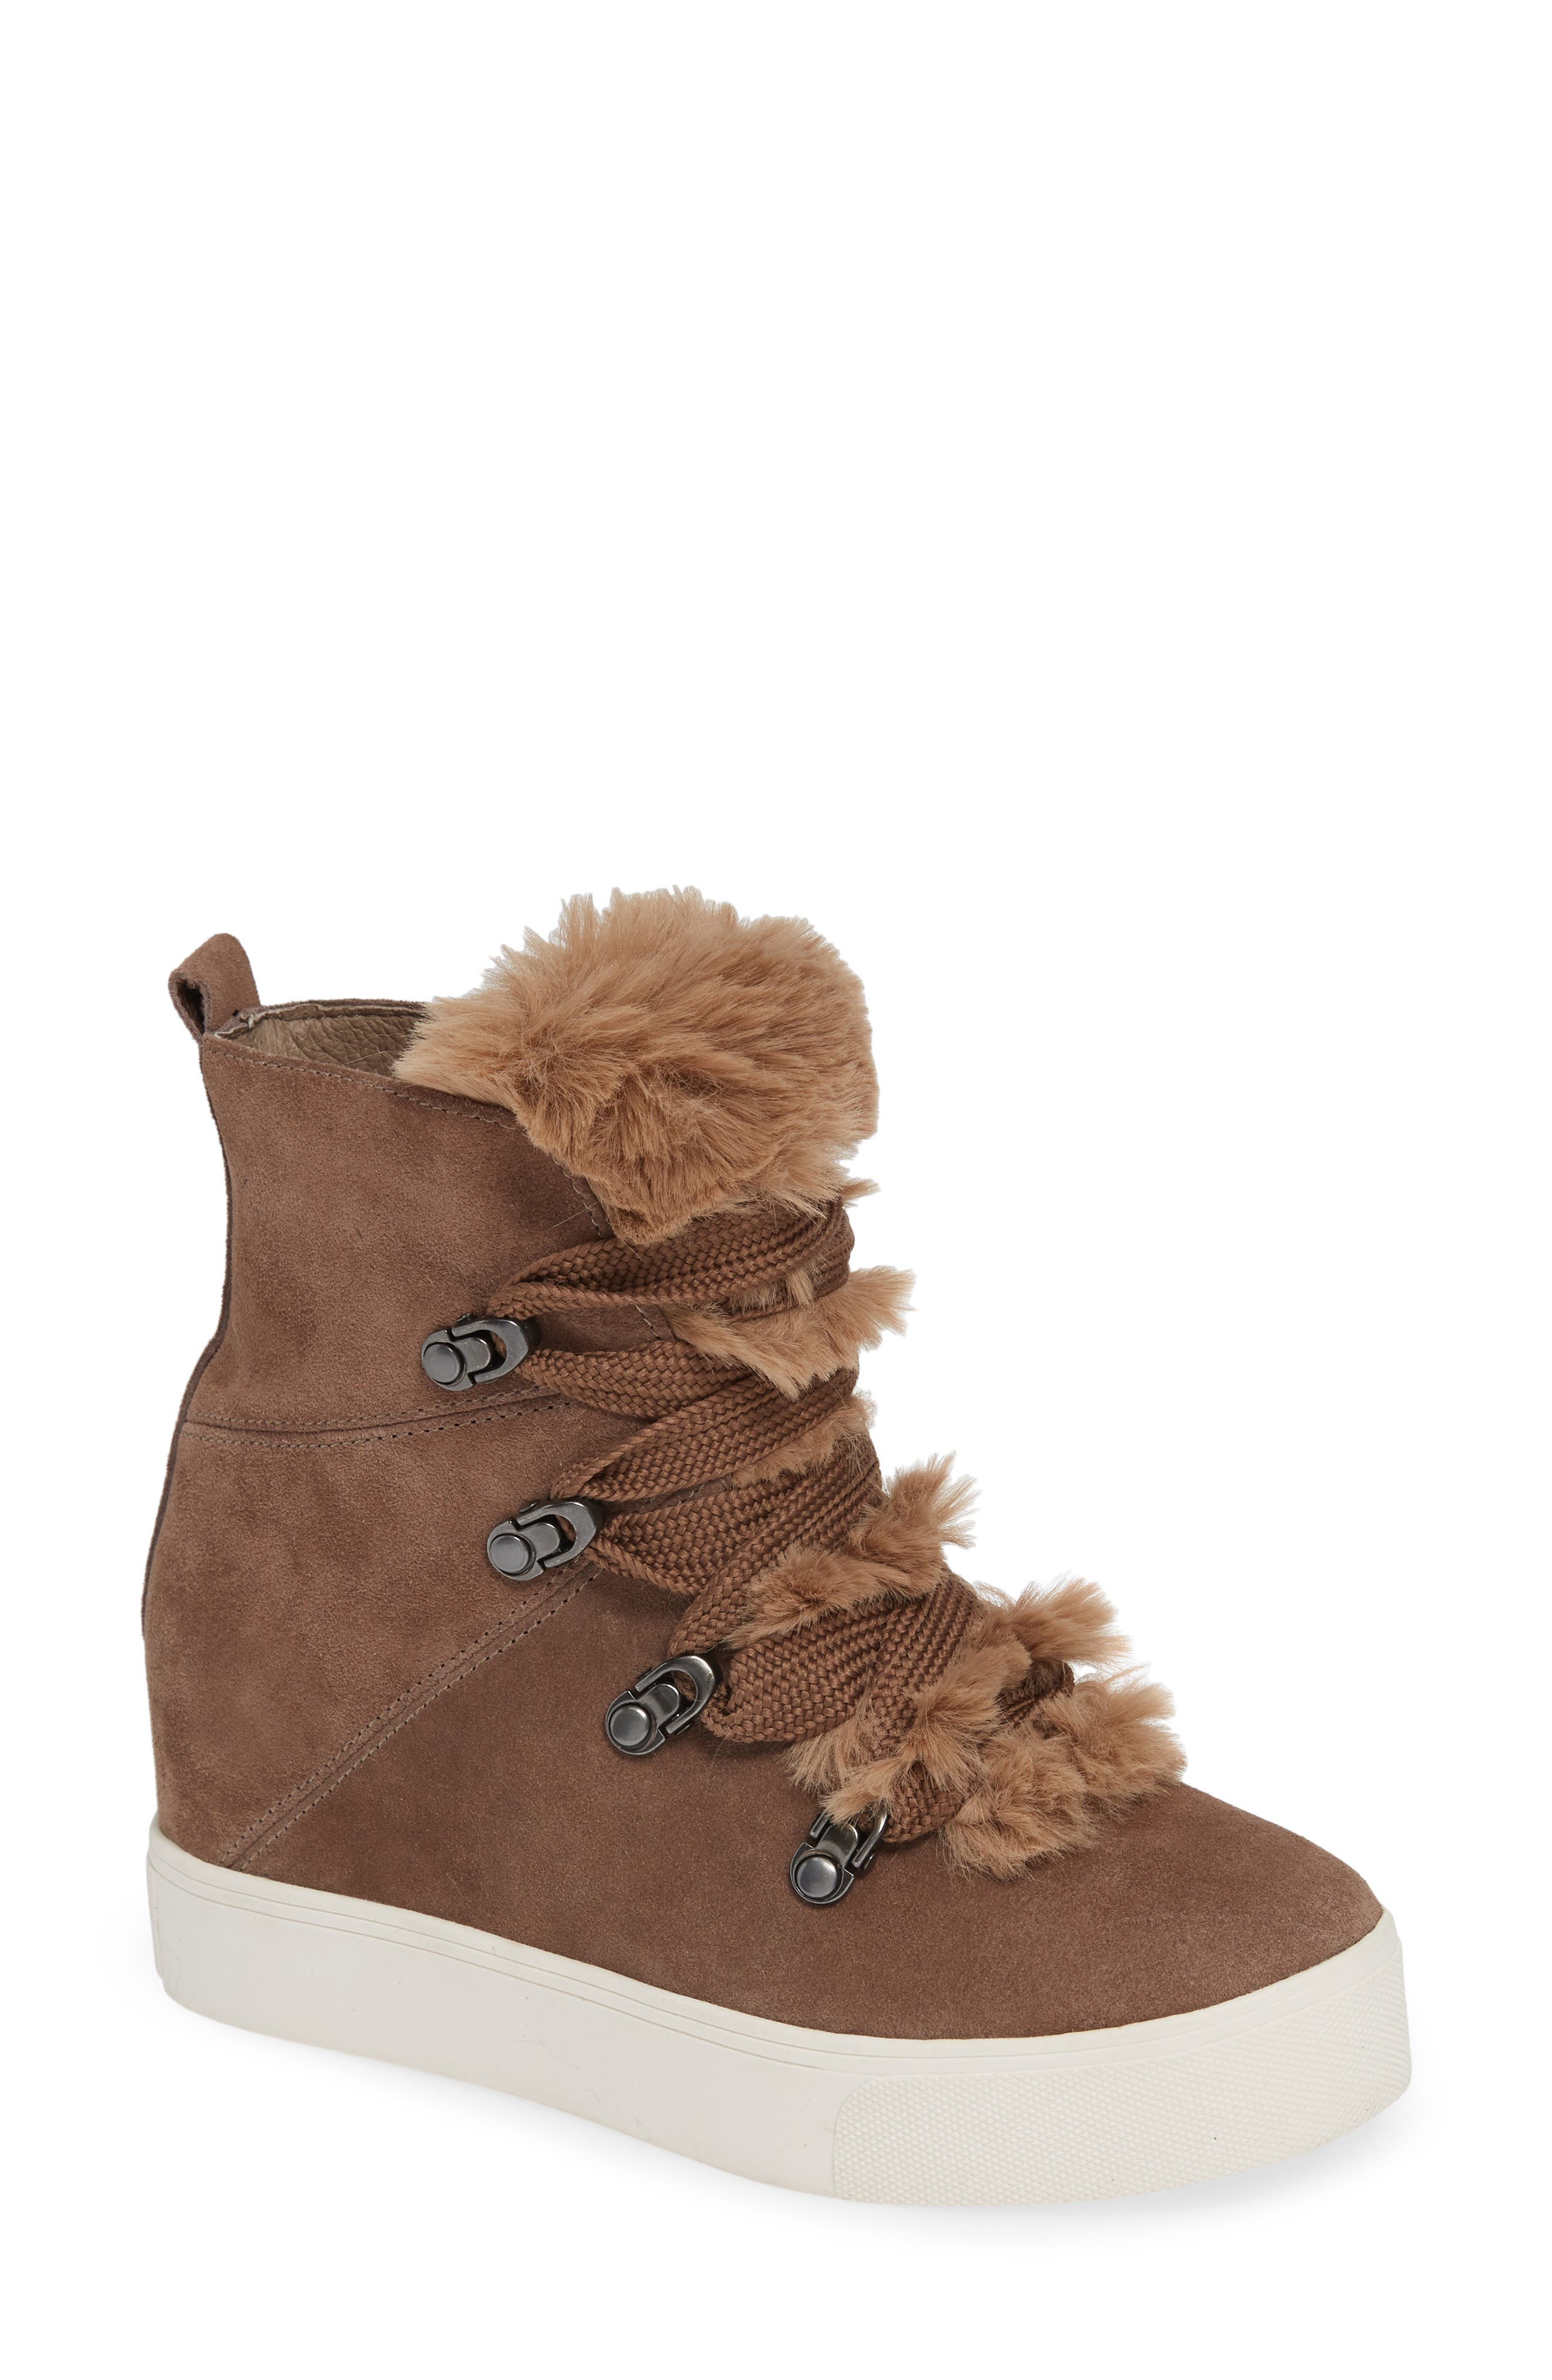 JSLIDES Whitney Faux Fur Trim High Top Sneaker in Taupe Suede